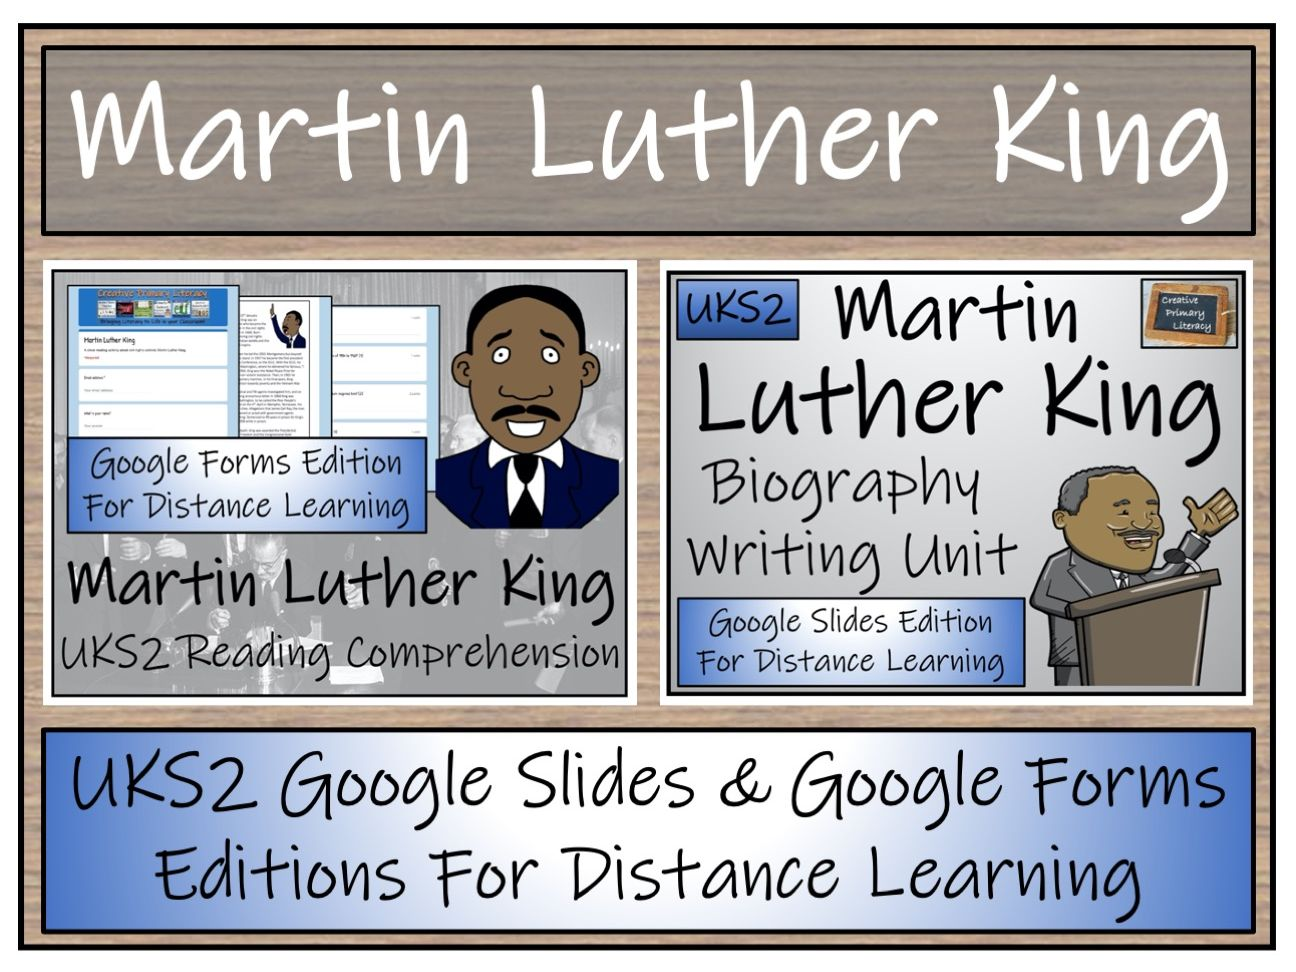 UKS2 Martin Luther King Biography & Reading Comprehension Distance Learning Bundle